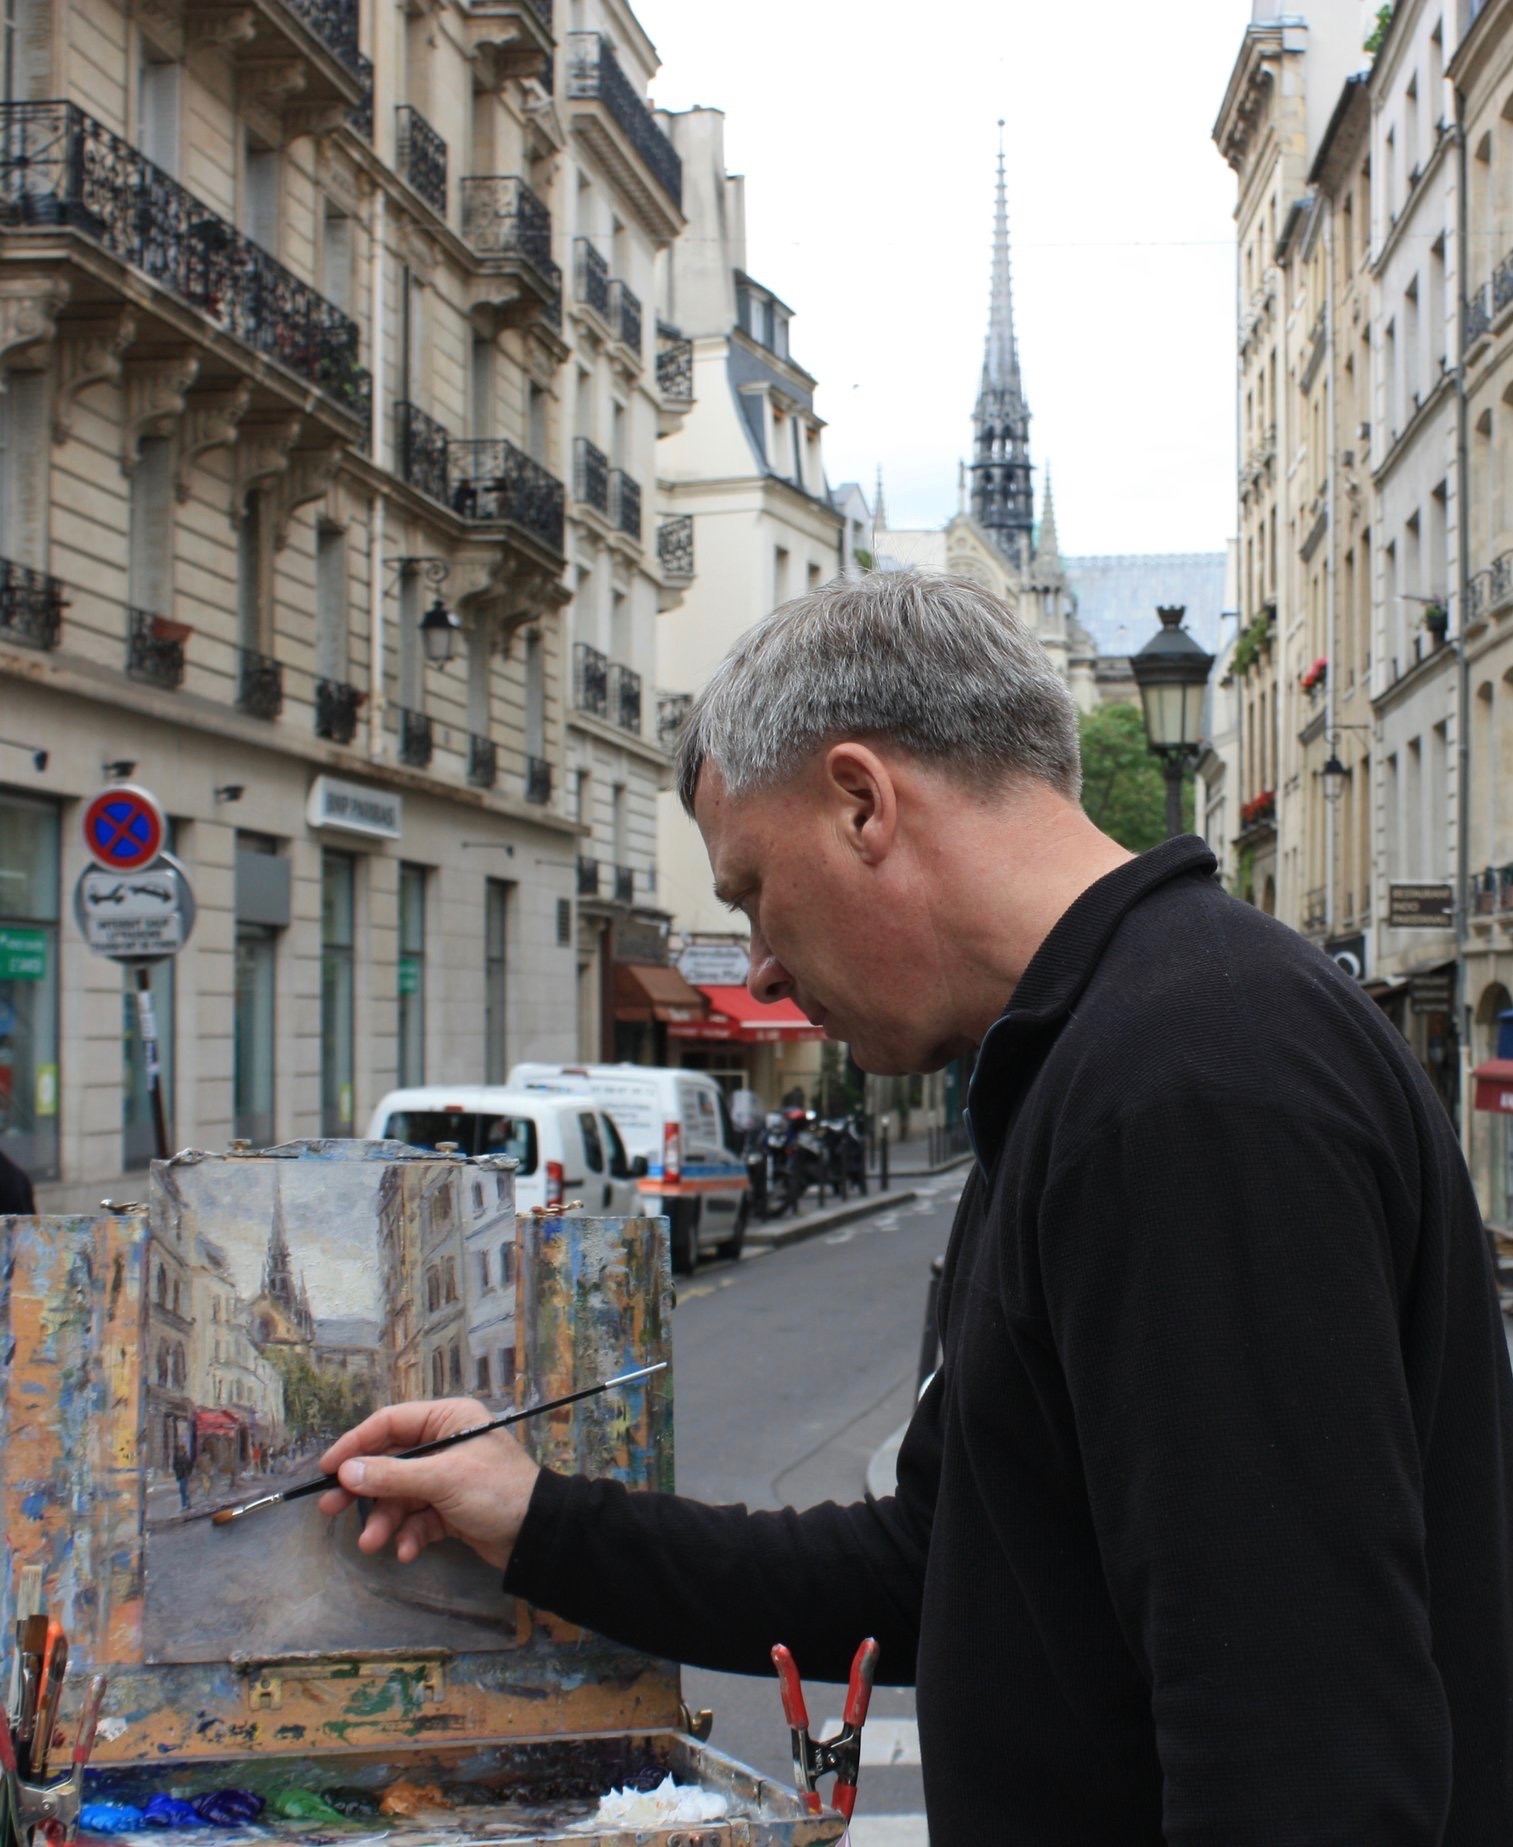 Daly Painting Notre Dame before the fire